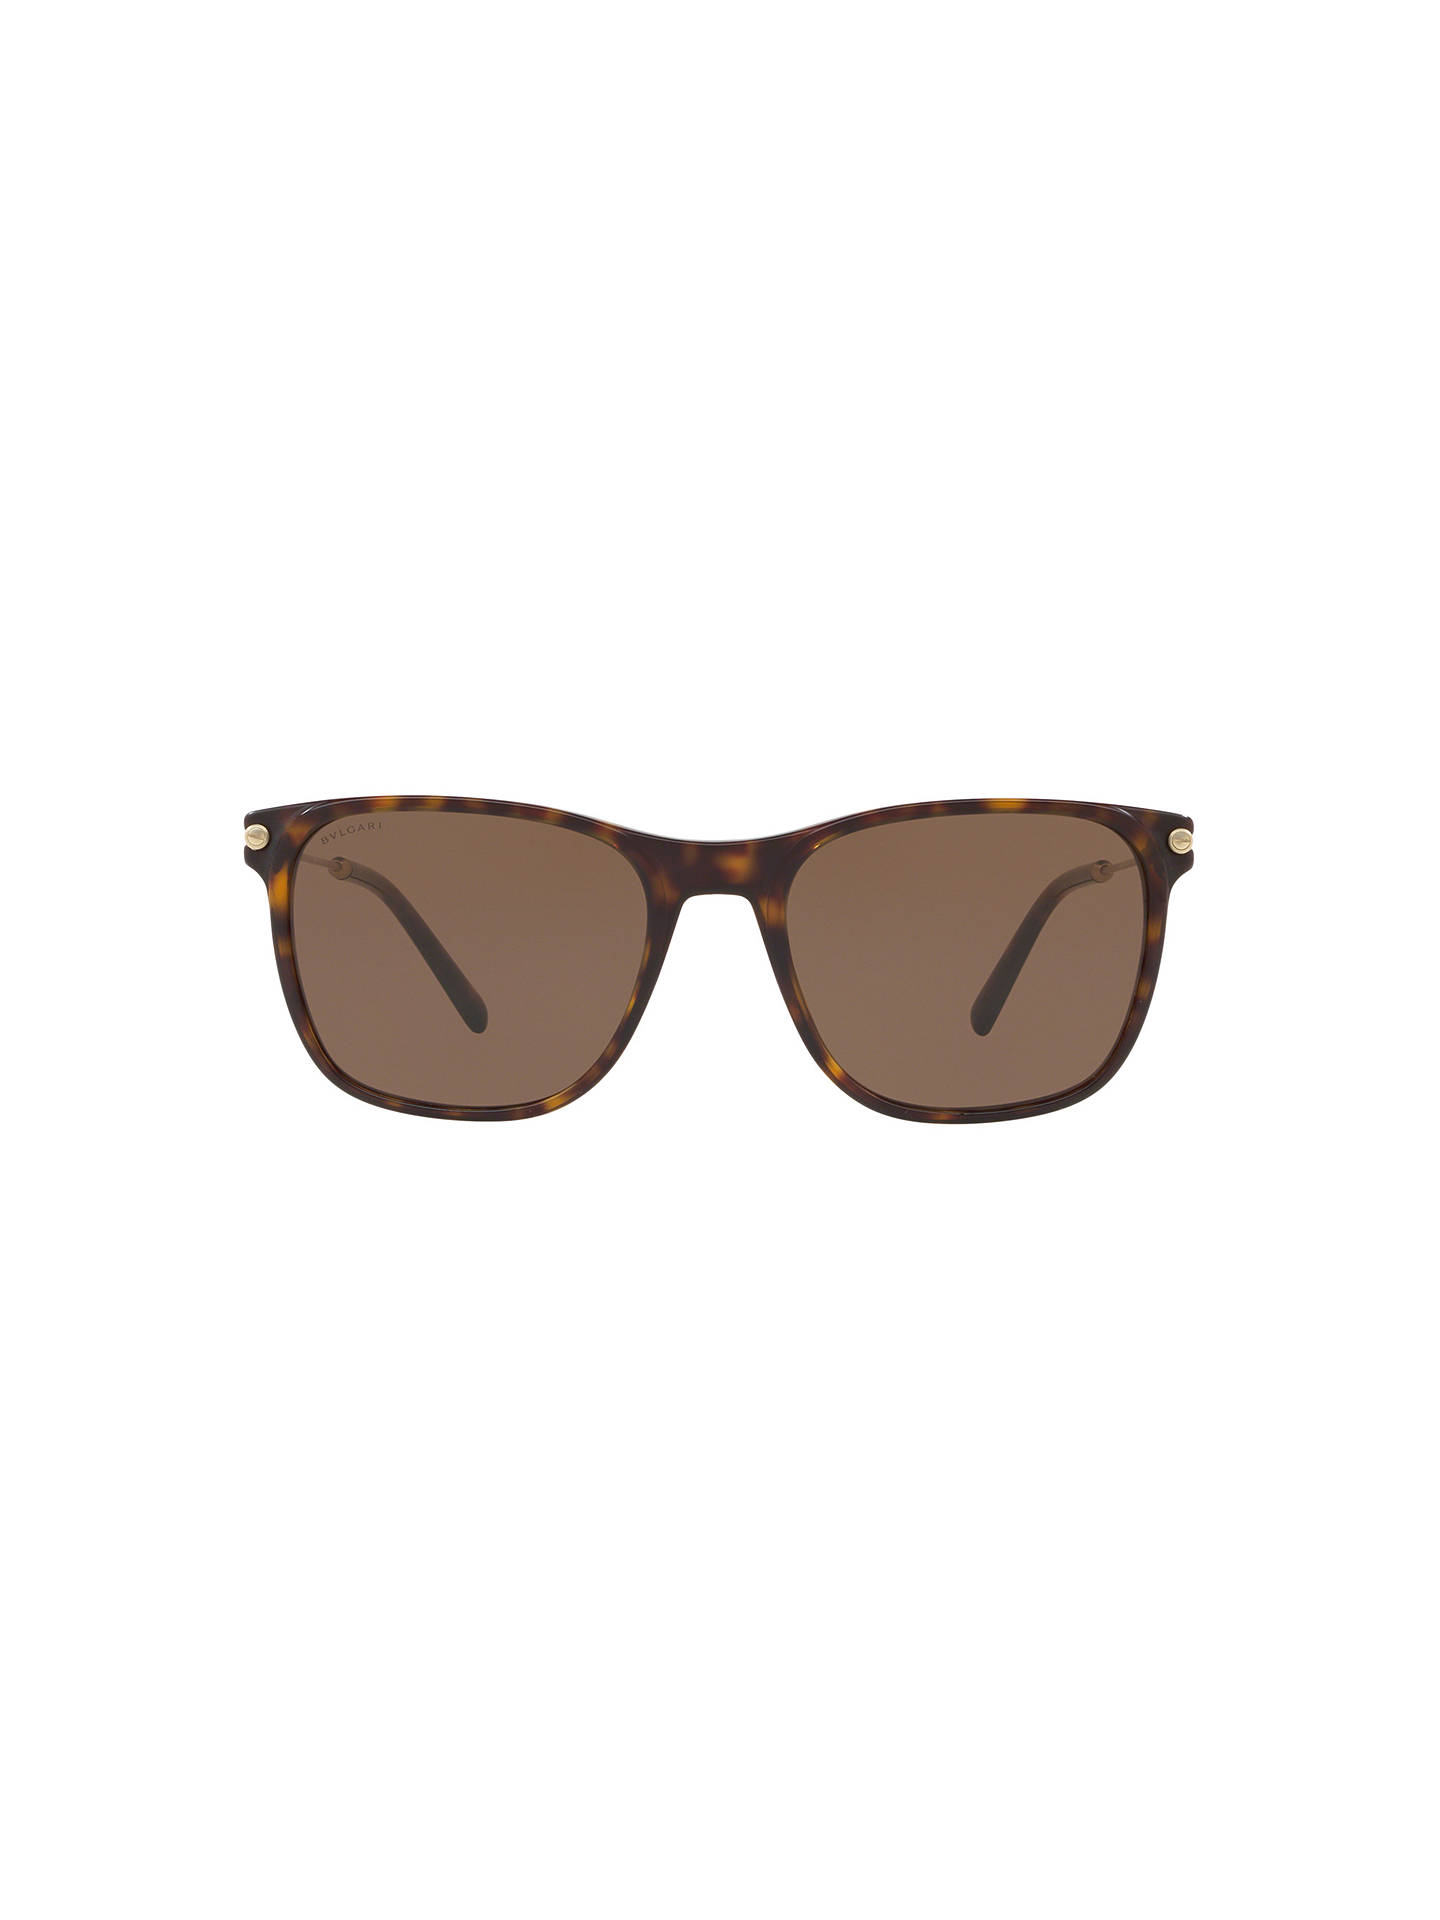 BuyBVLGARI BV7032 Men's D-Frame Sunglasses, Tortoise/Brown Online at johnlewis.com